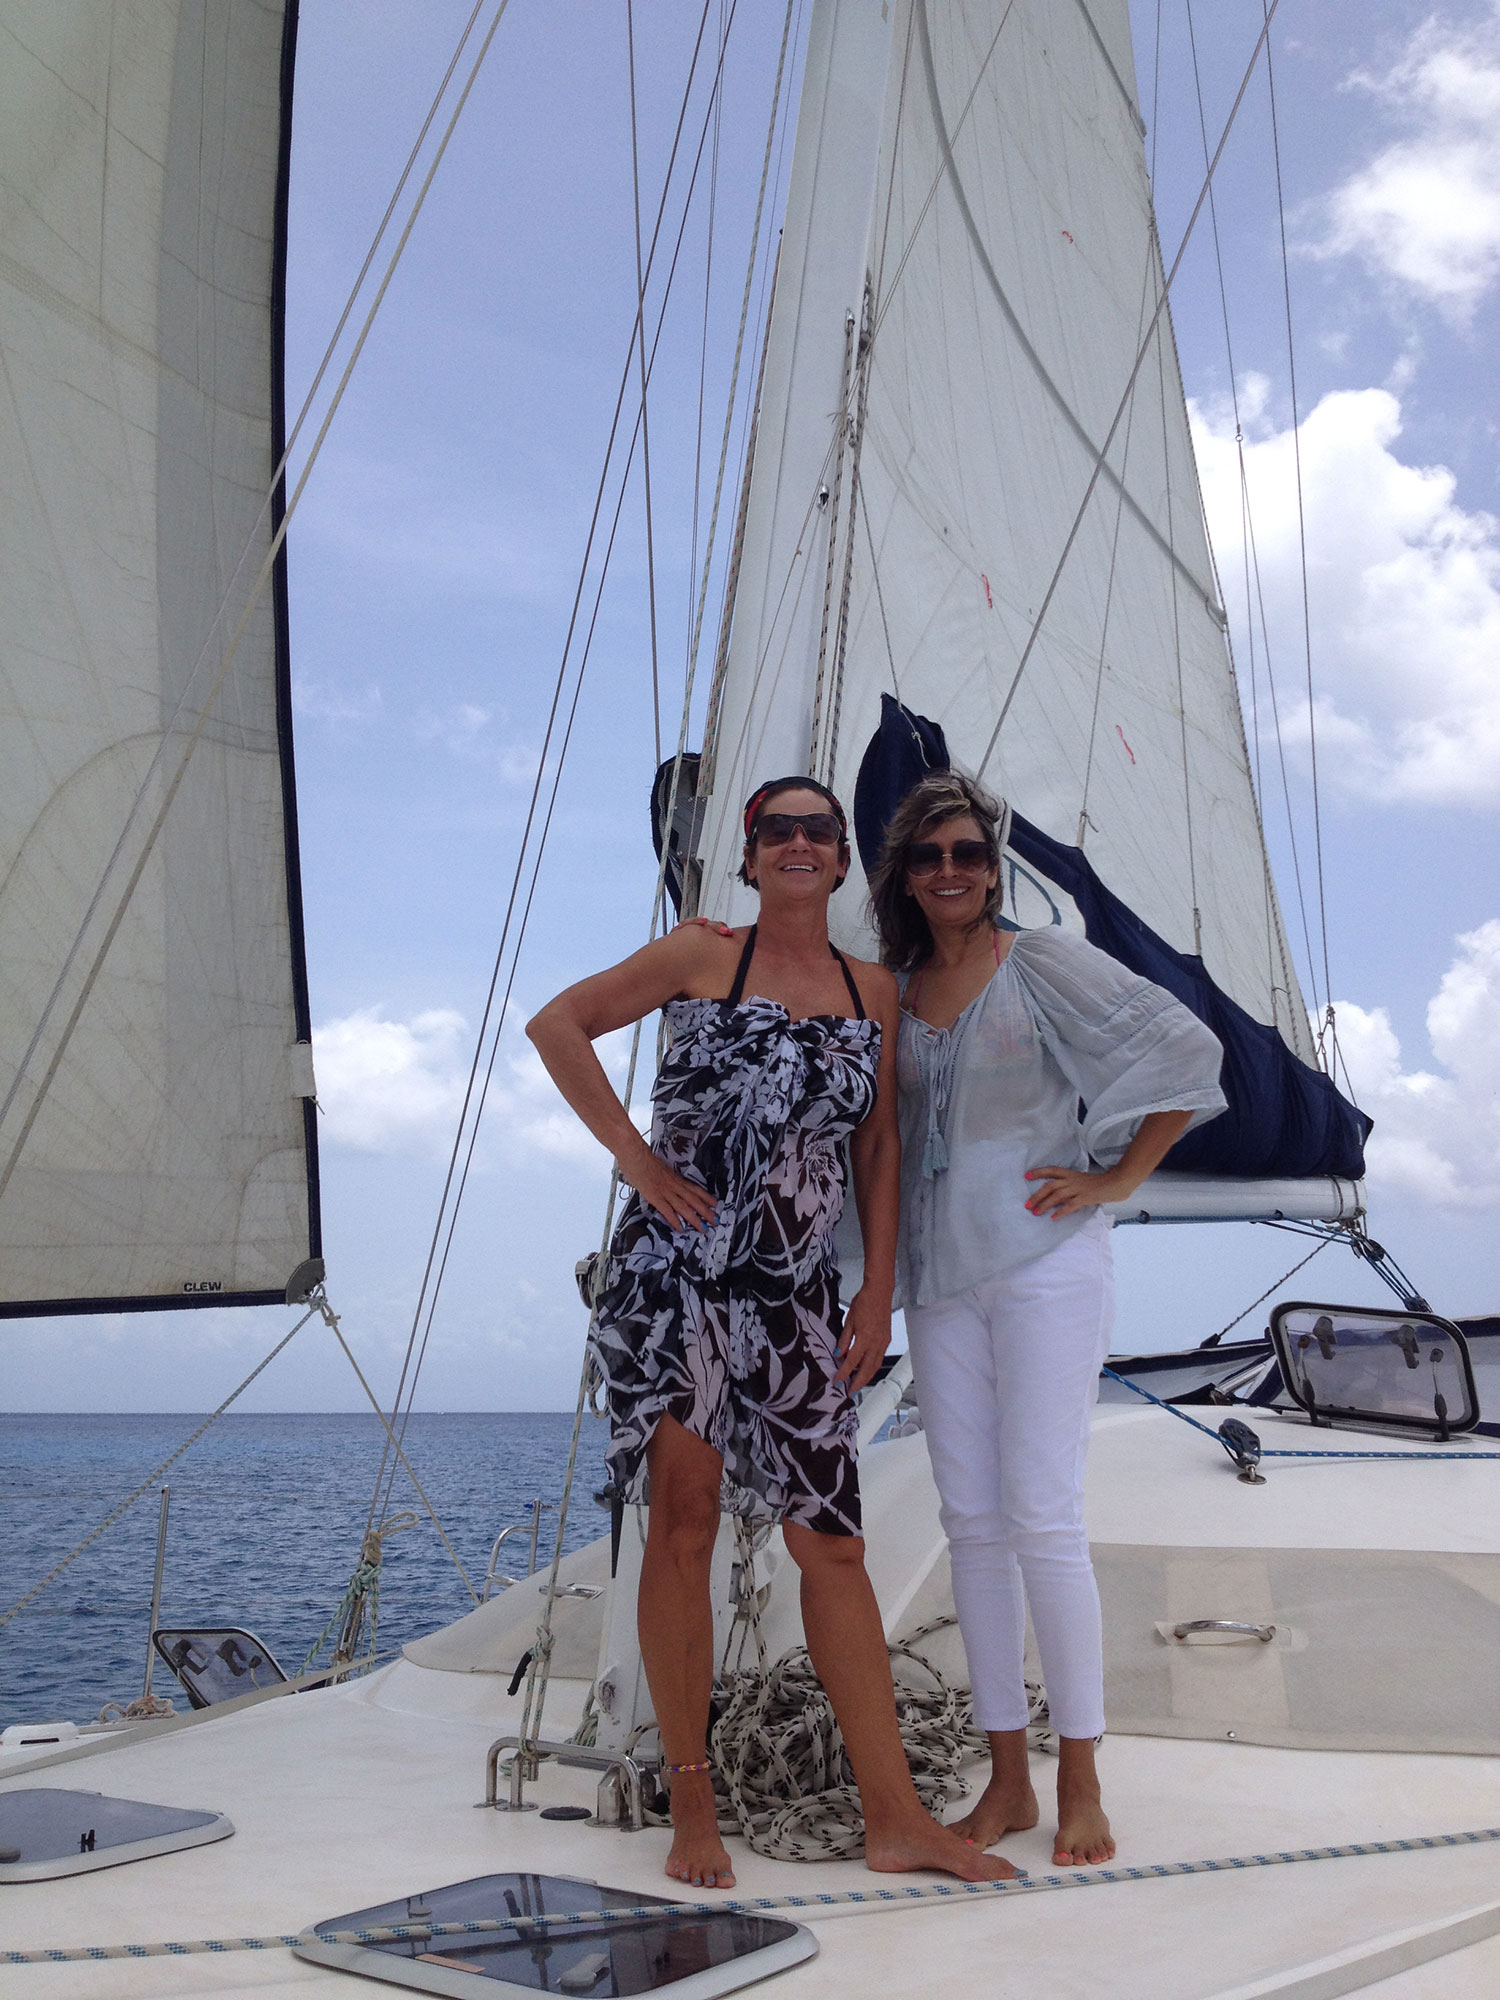 Sailing with my friend Claudia.